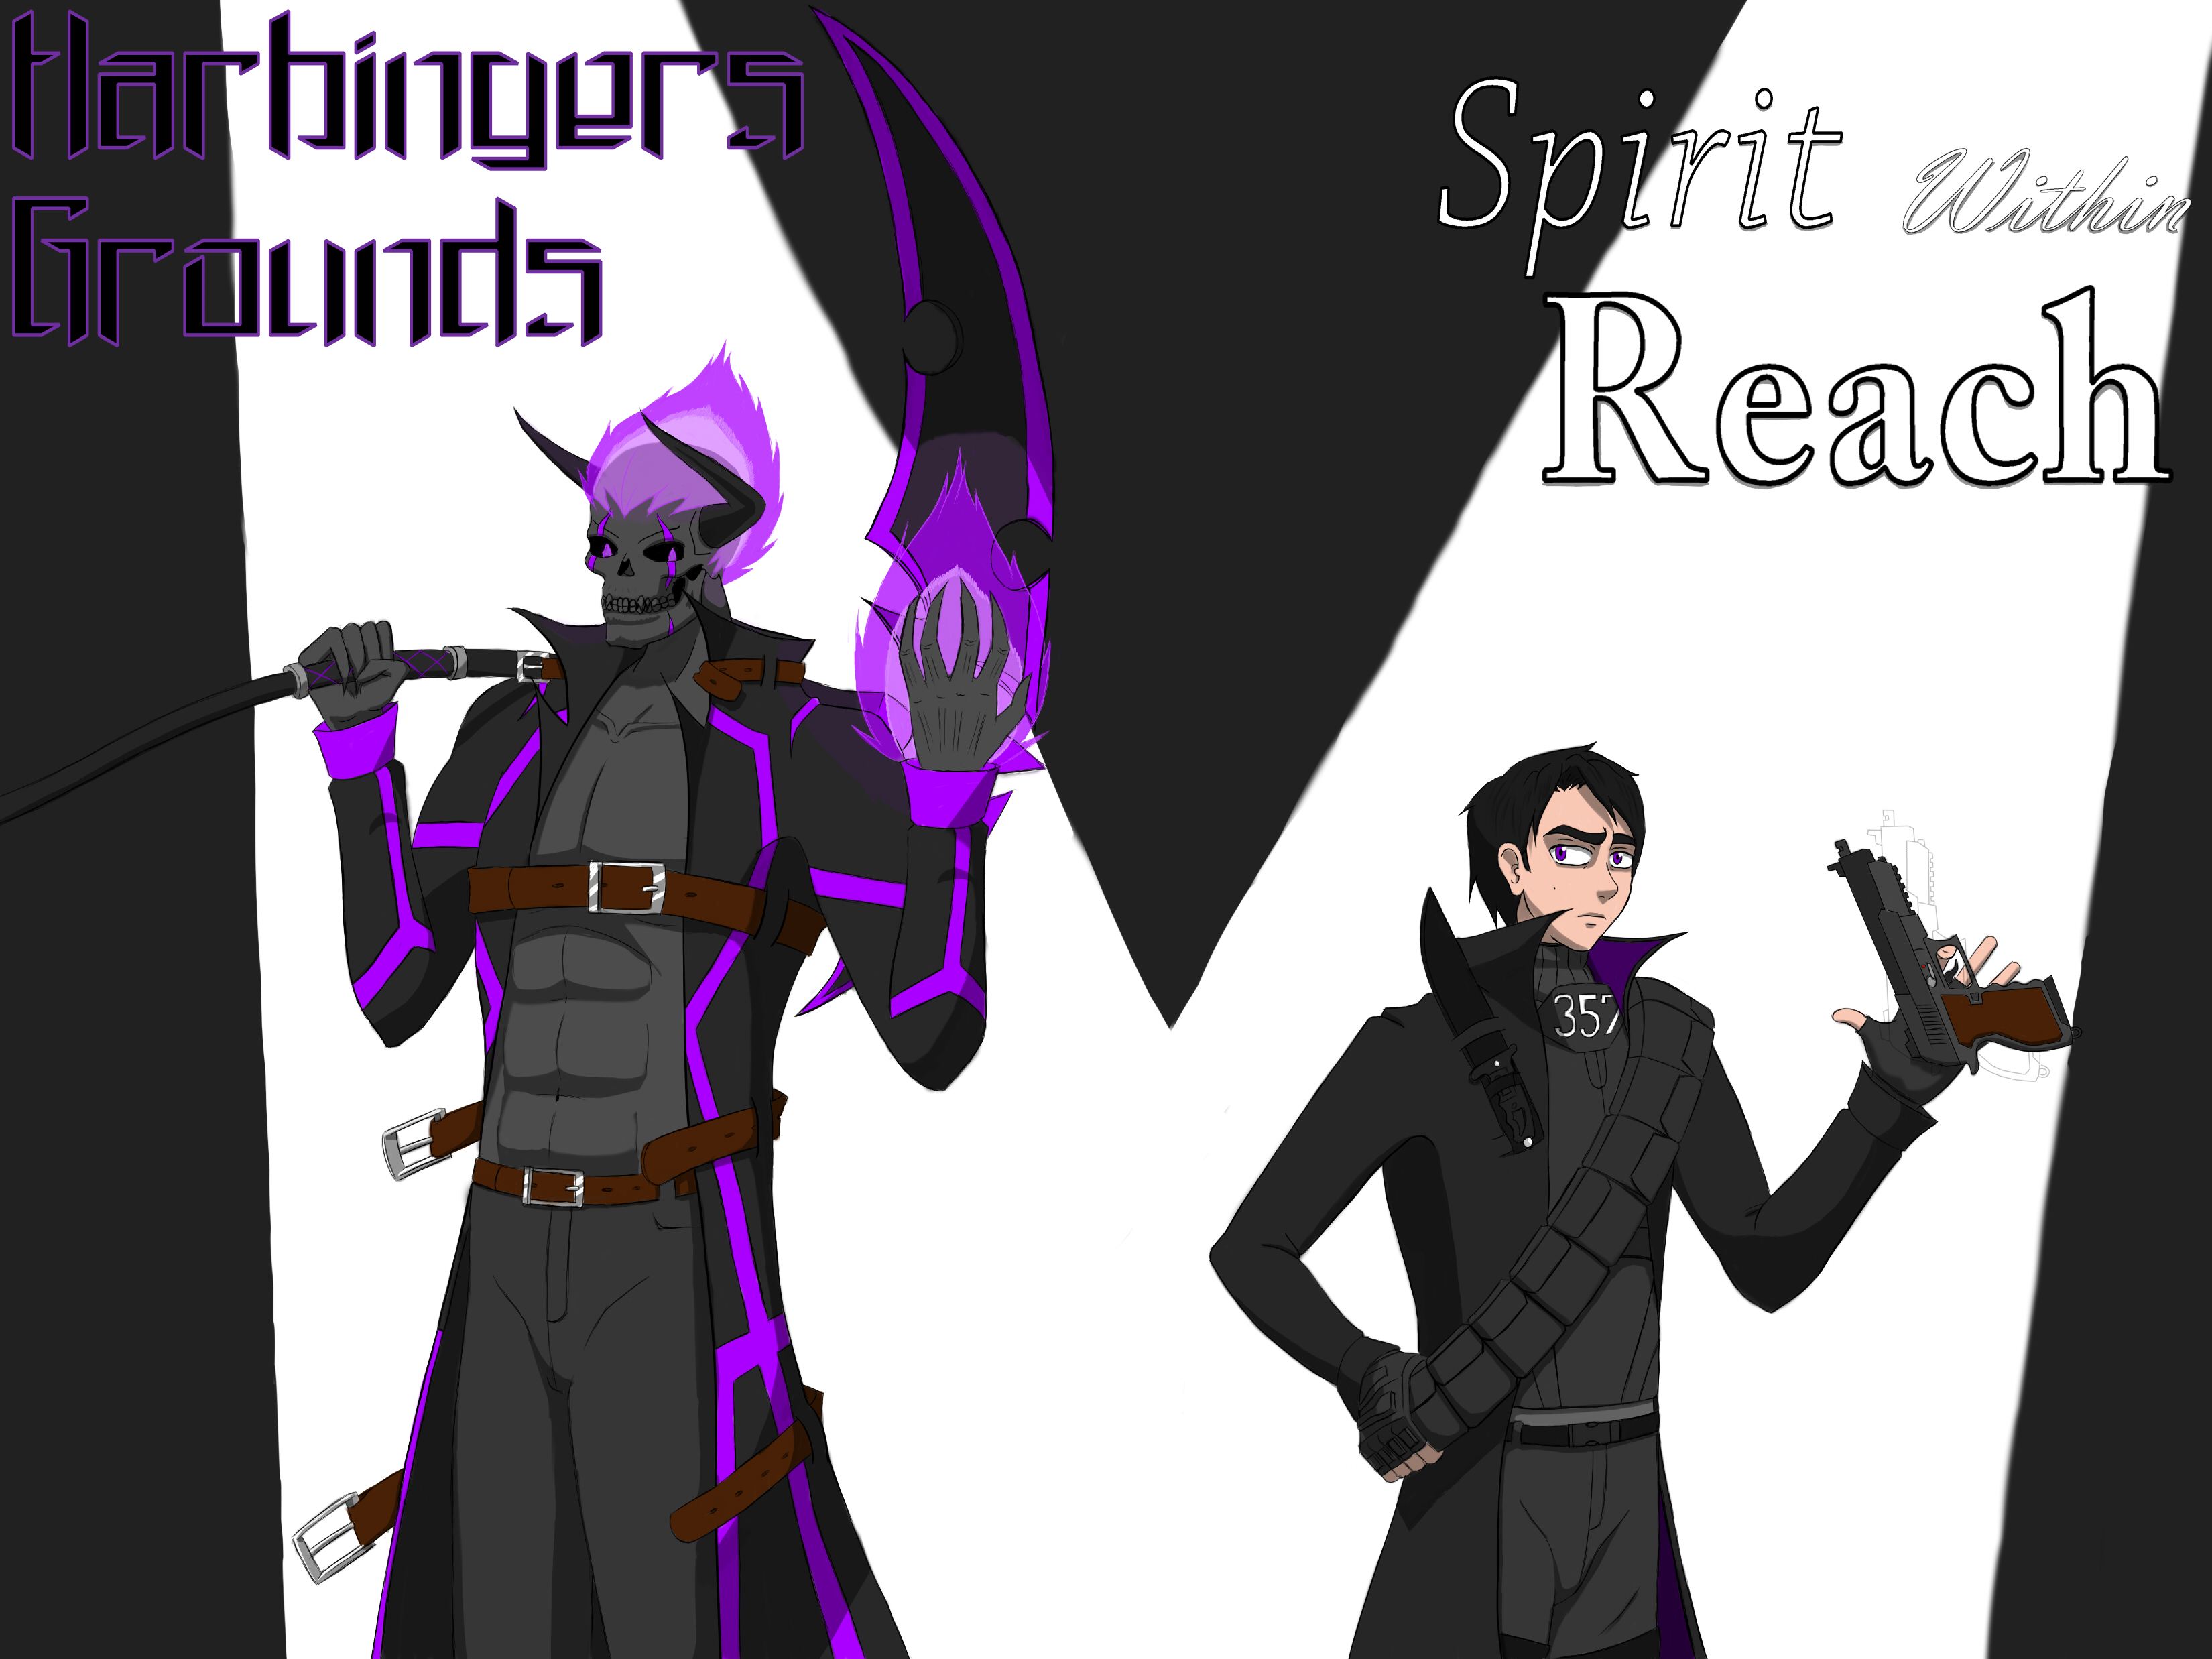 Harbingers Grounds or Spirit within Reach?